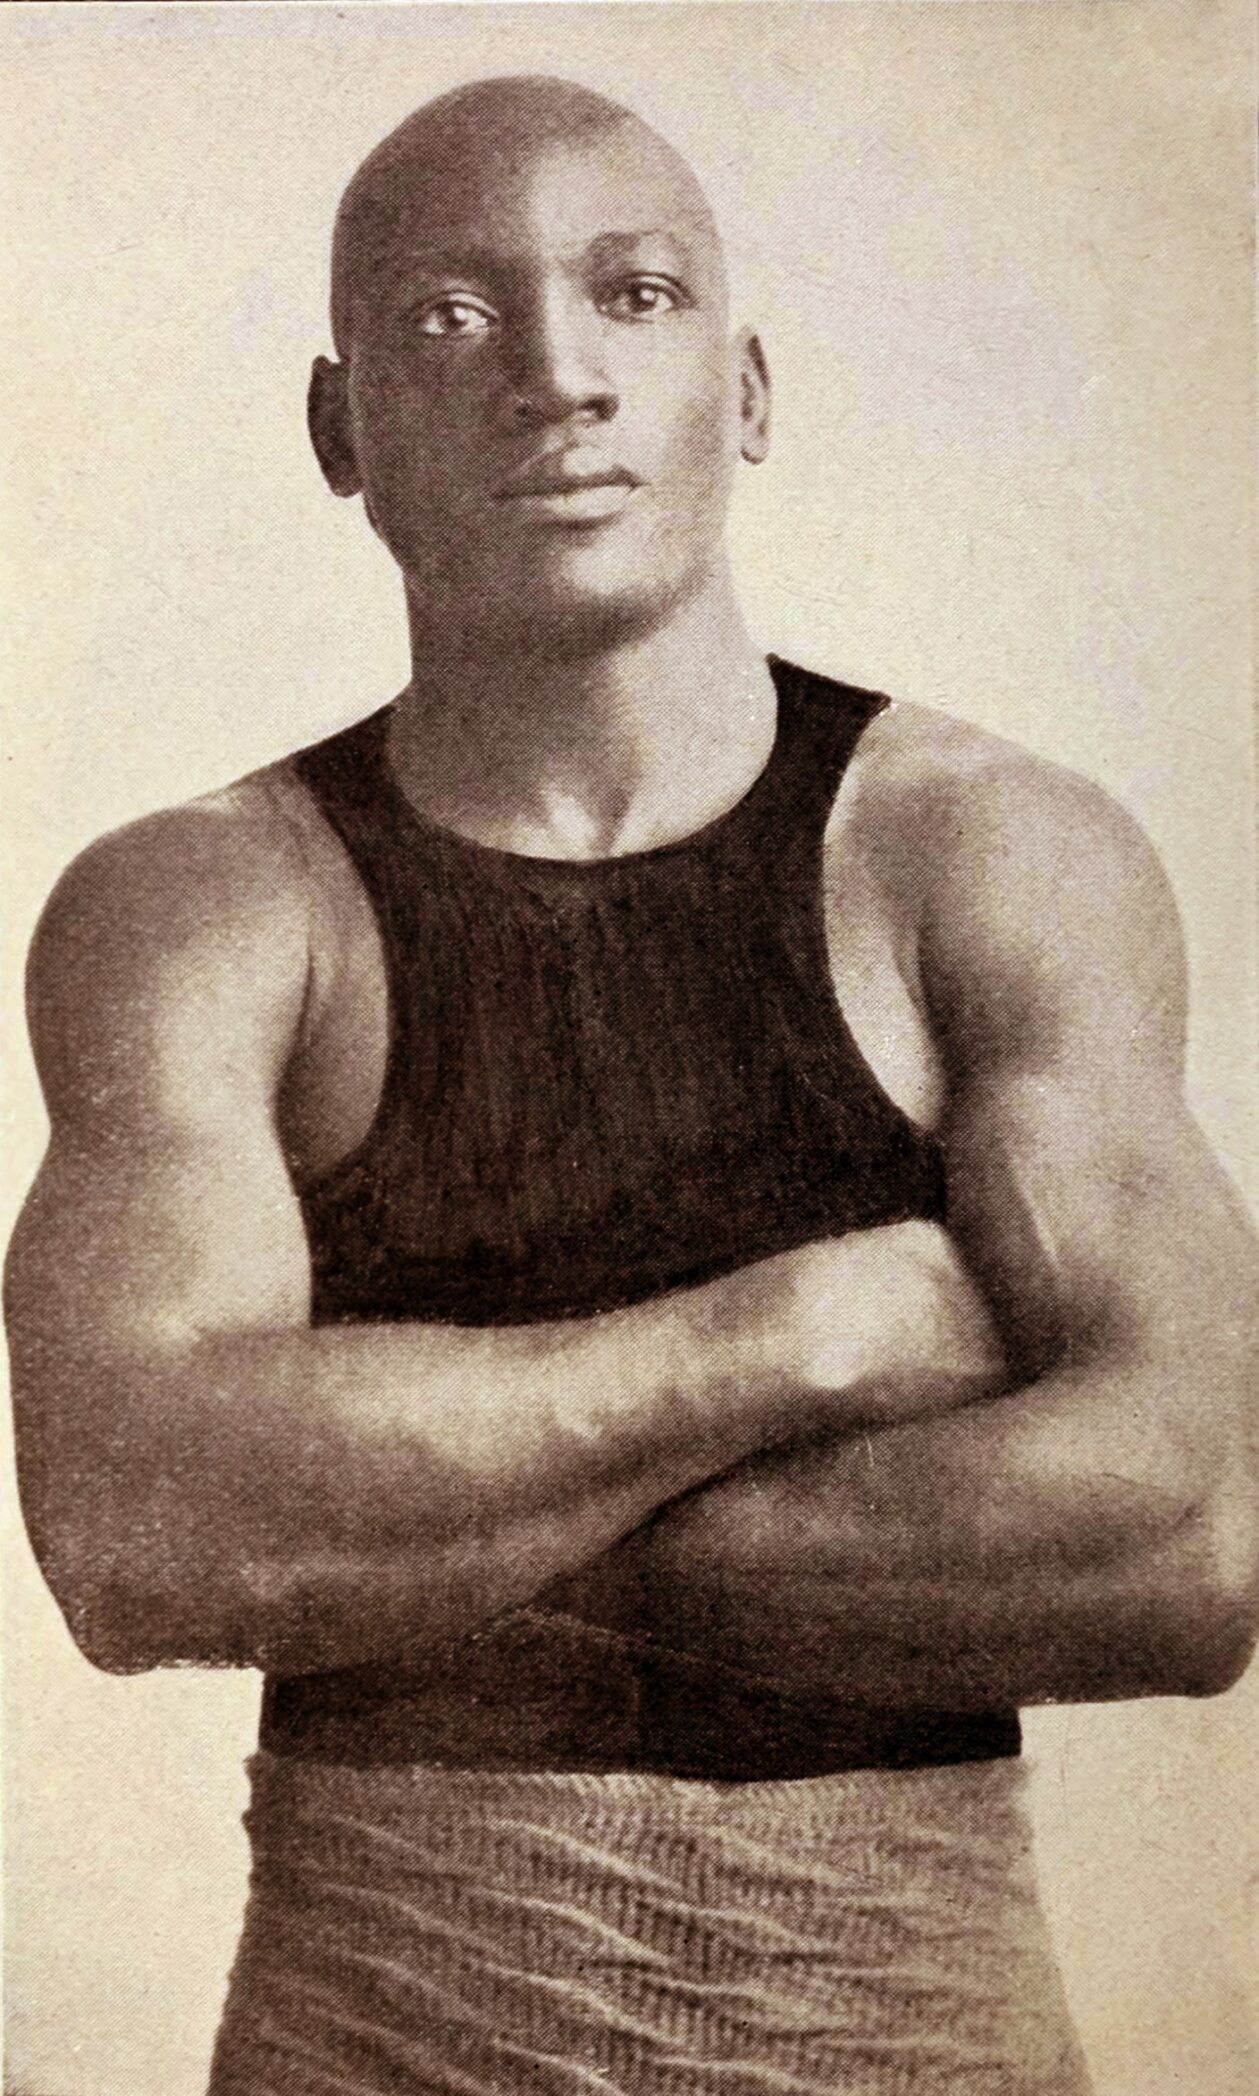 Jack Johnson, the first black heavy weight boxing champion. We can't let hatred, bigotry, and racism against President Barack H. Obama allowe black people to suffer the same fate Johnson did.